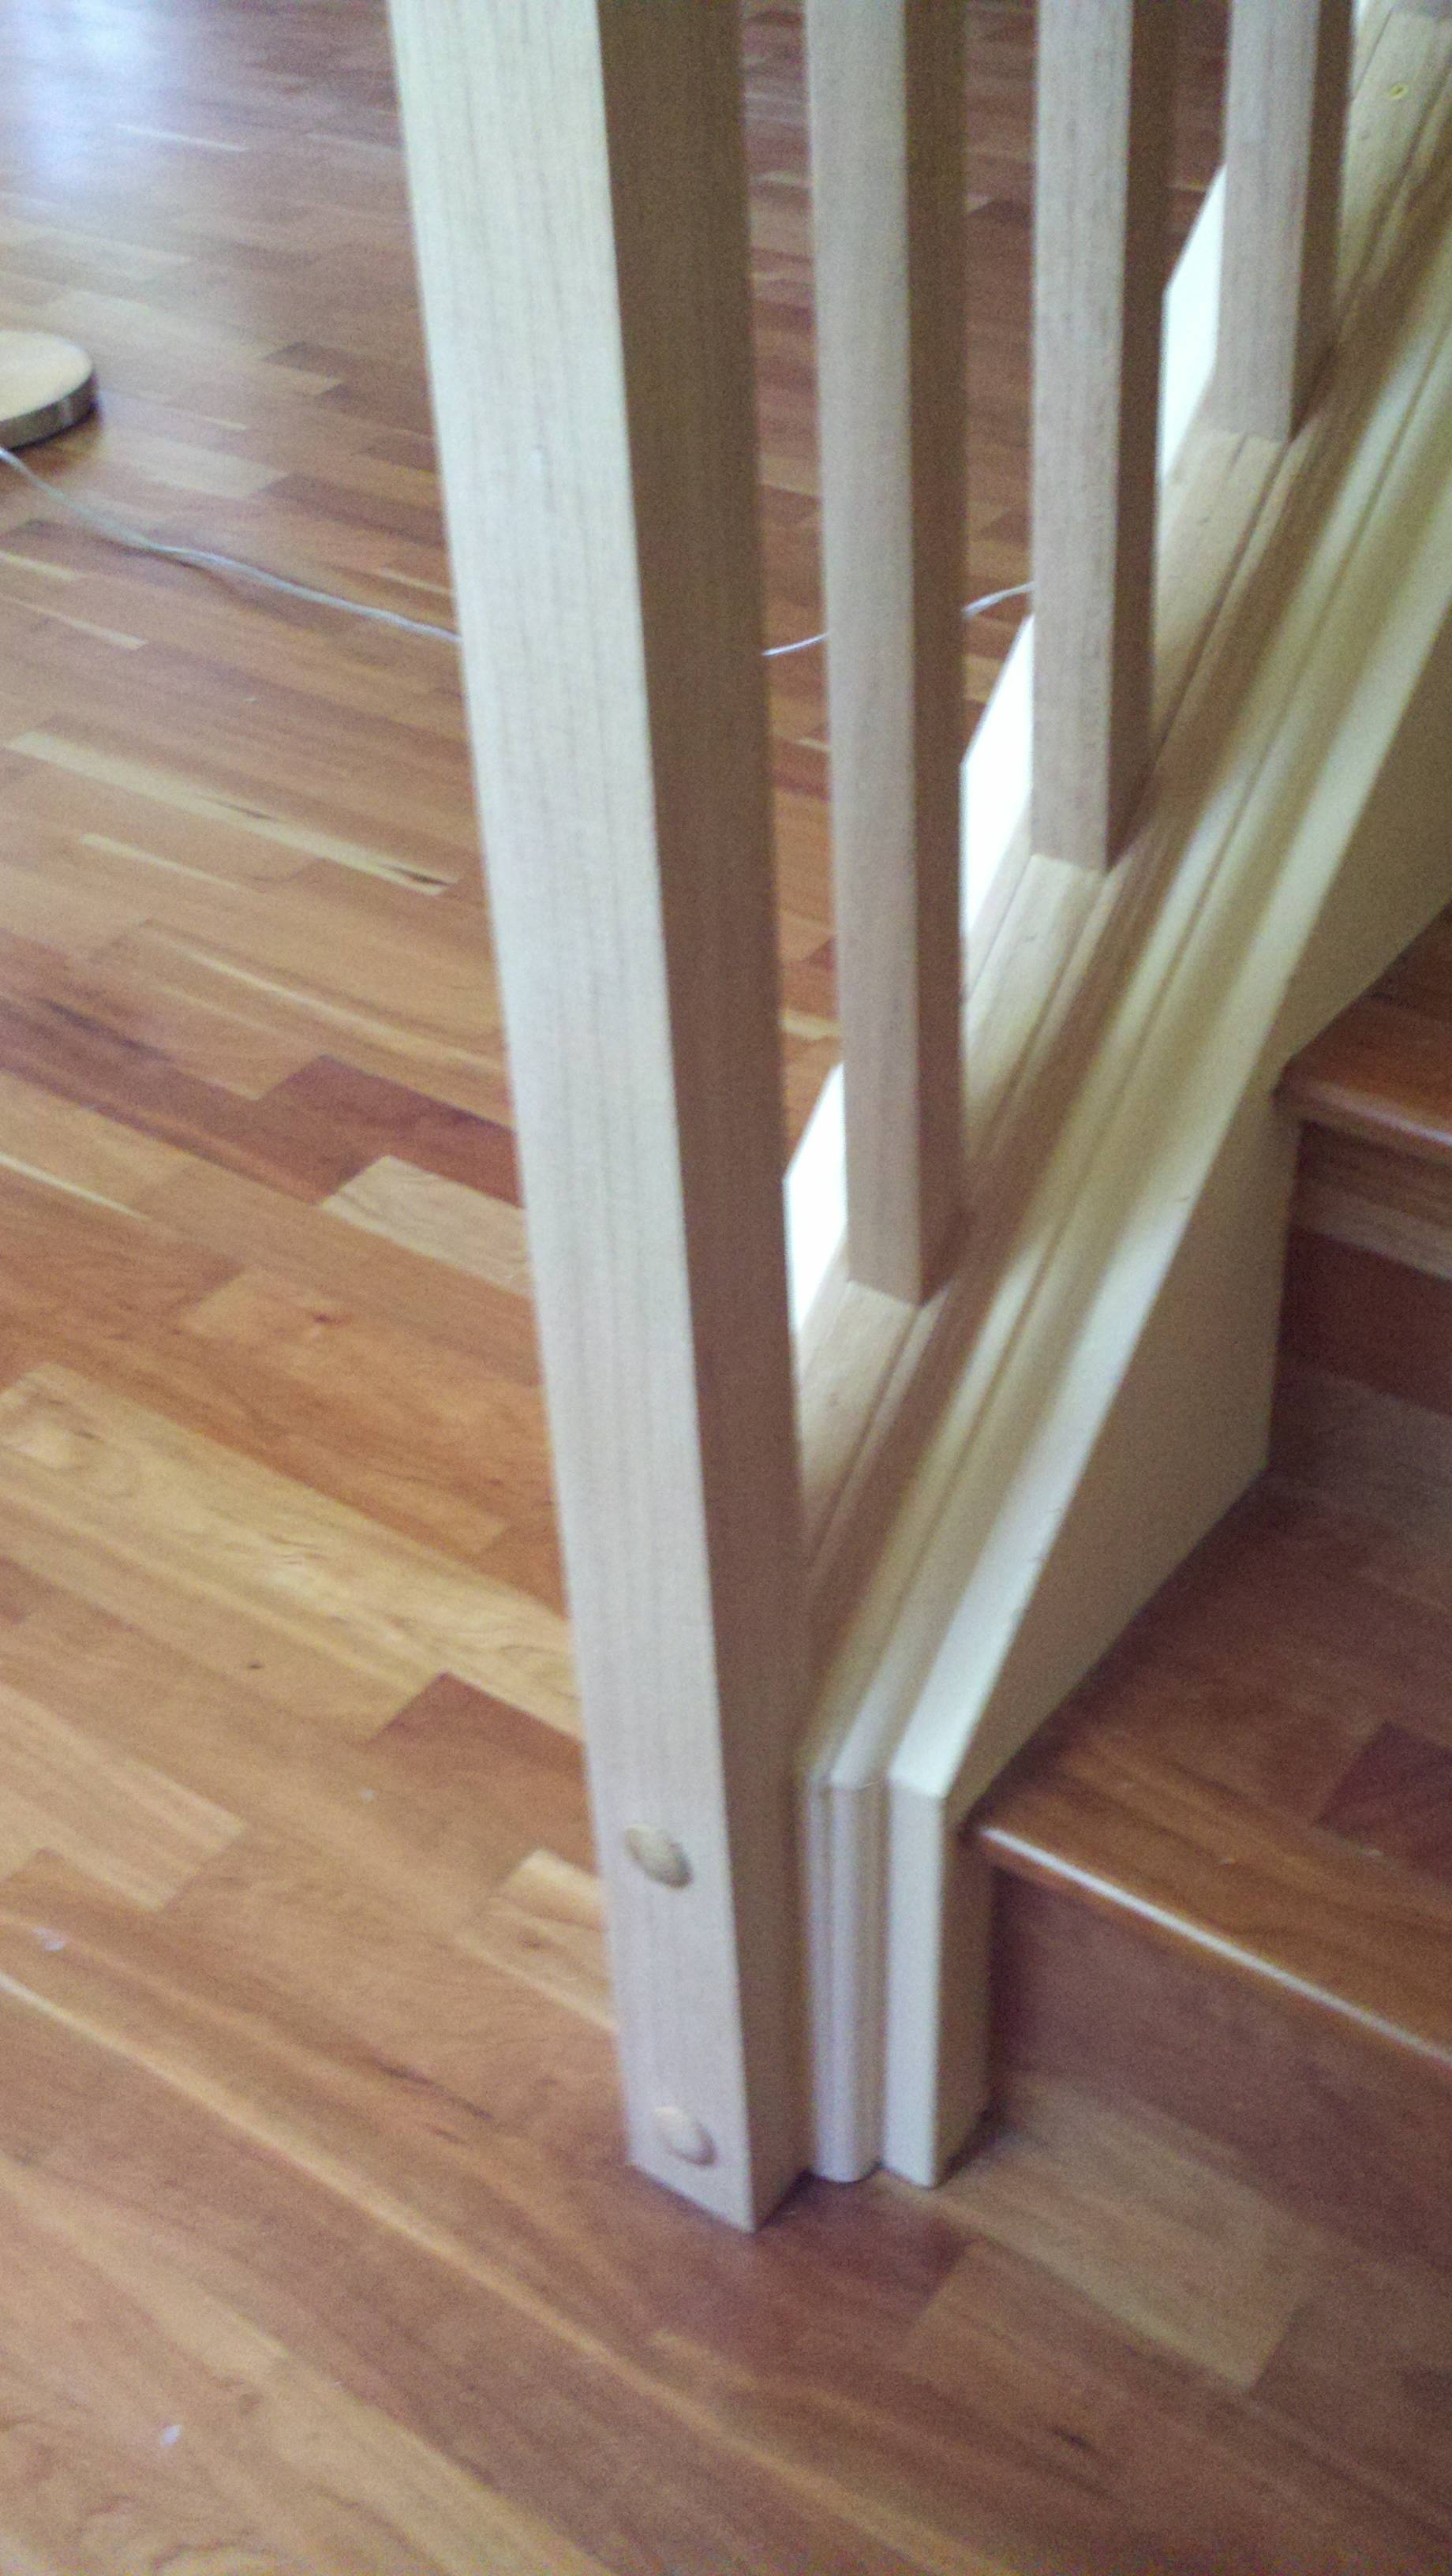 How Can I Set Up A Removable Stair Railing Home | Removable Handrail For Stairs